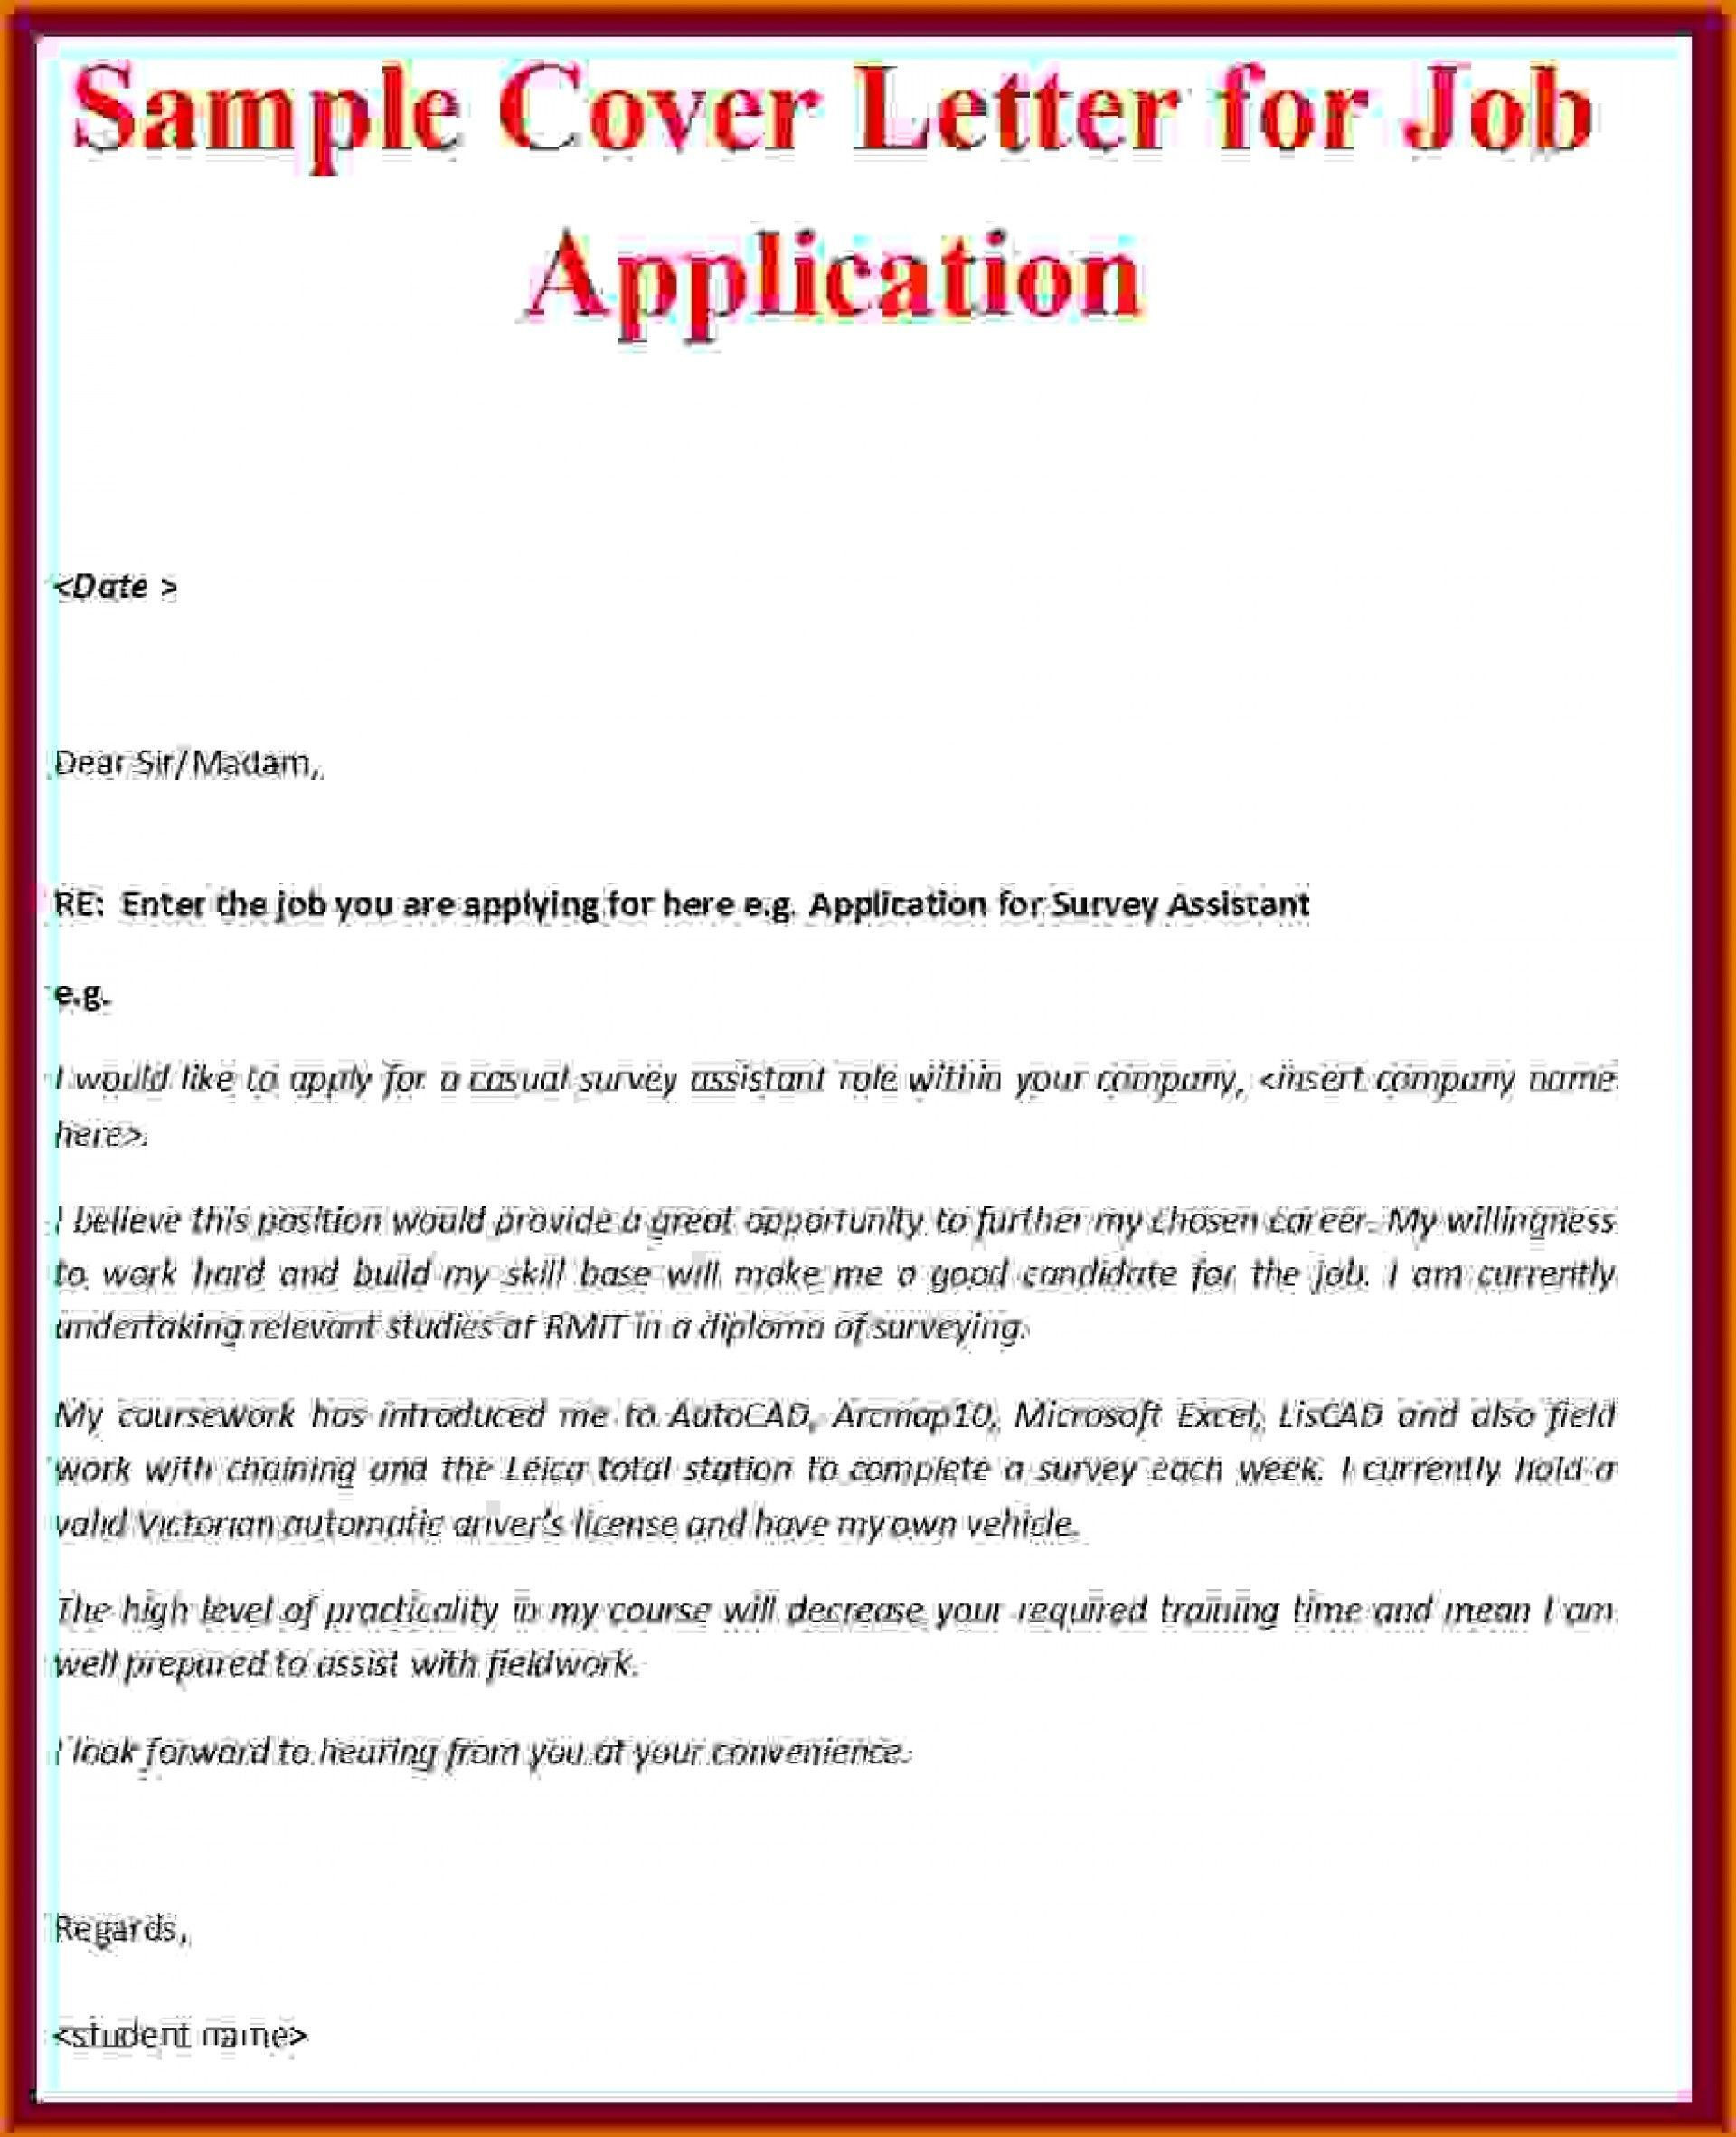 resume cover letter format pdf addictionary for job application wondrous sample place Resume Resume For Job Application Pdf